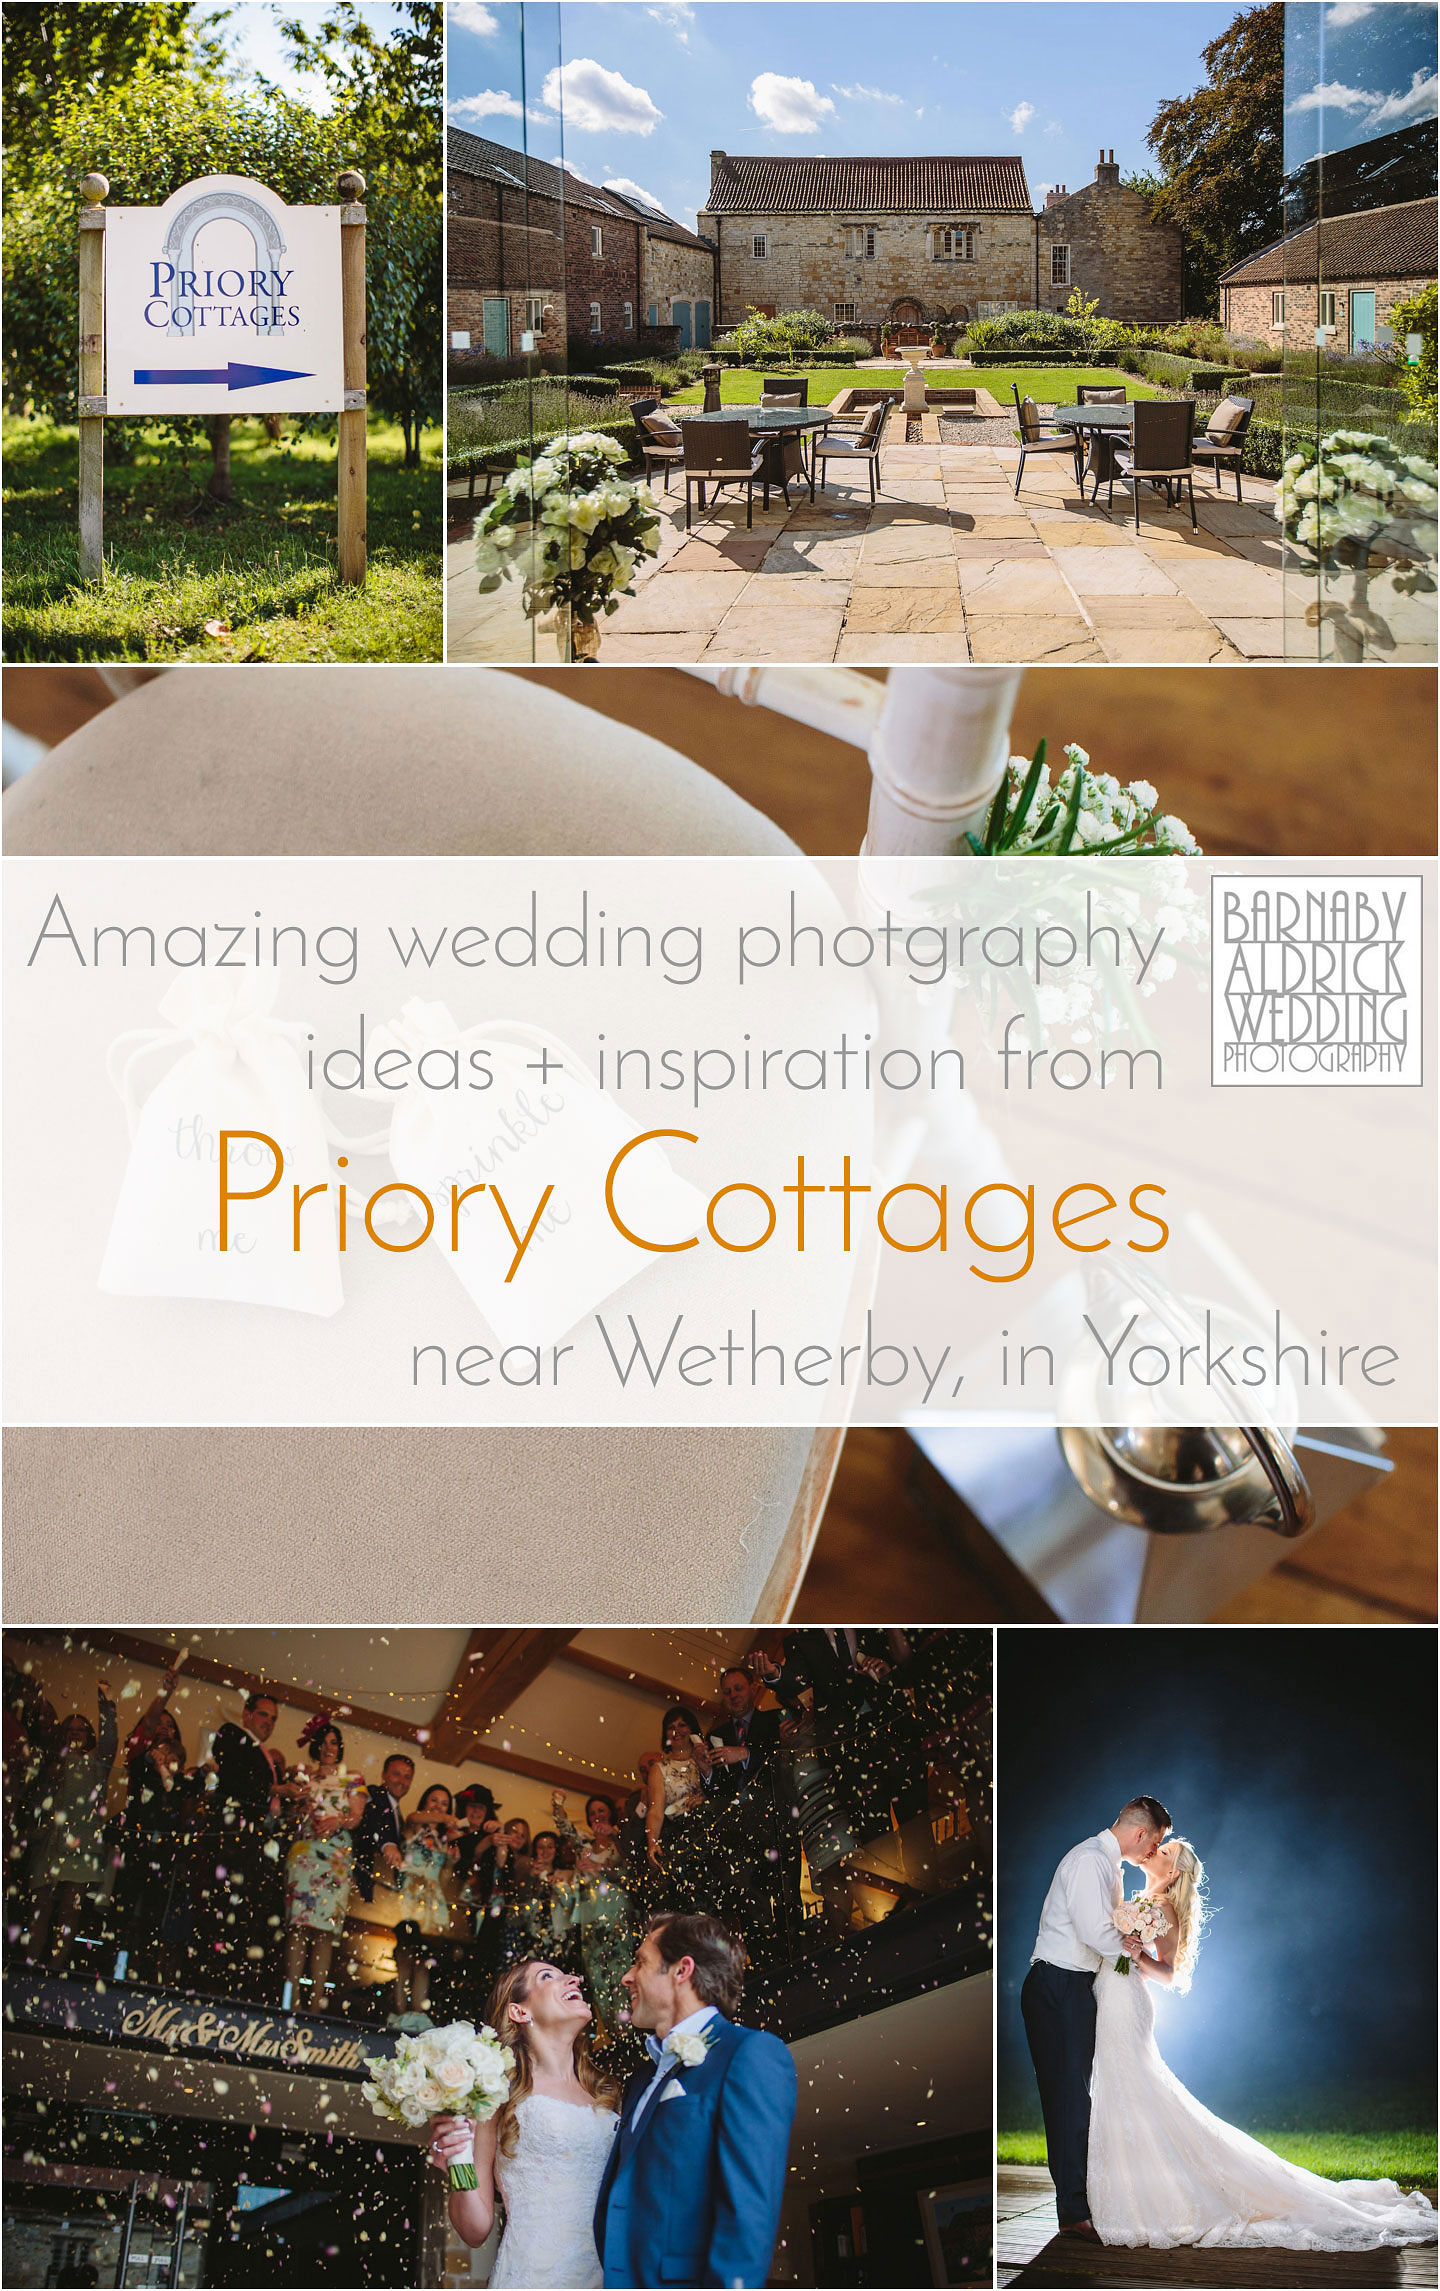 Wedding Photography ideas and inspiration at Priory Cottages between Wetherby Tadcaster Harrogate and Leeds